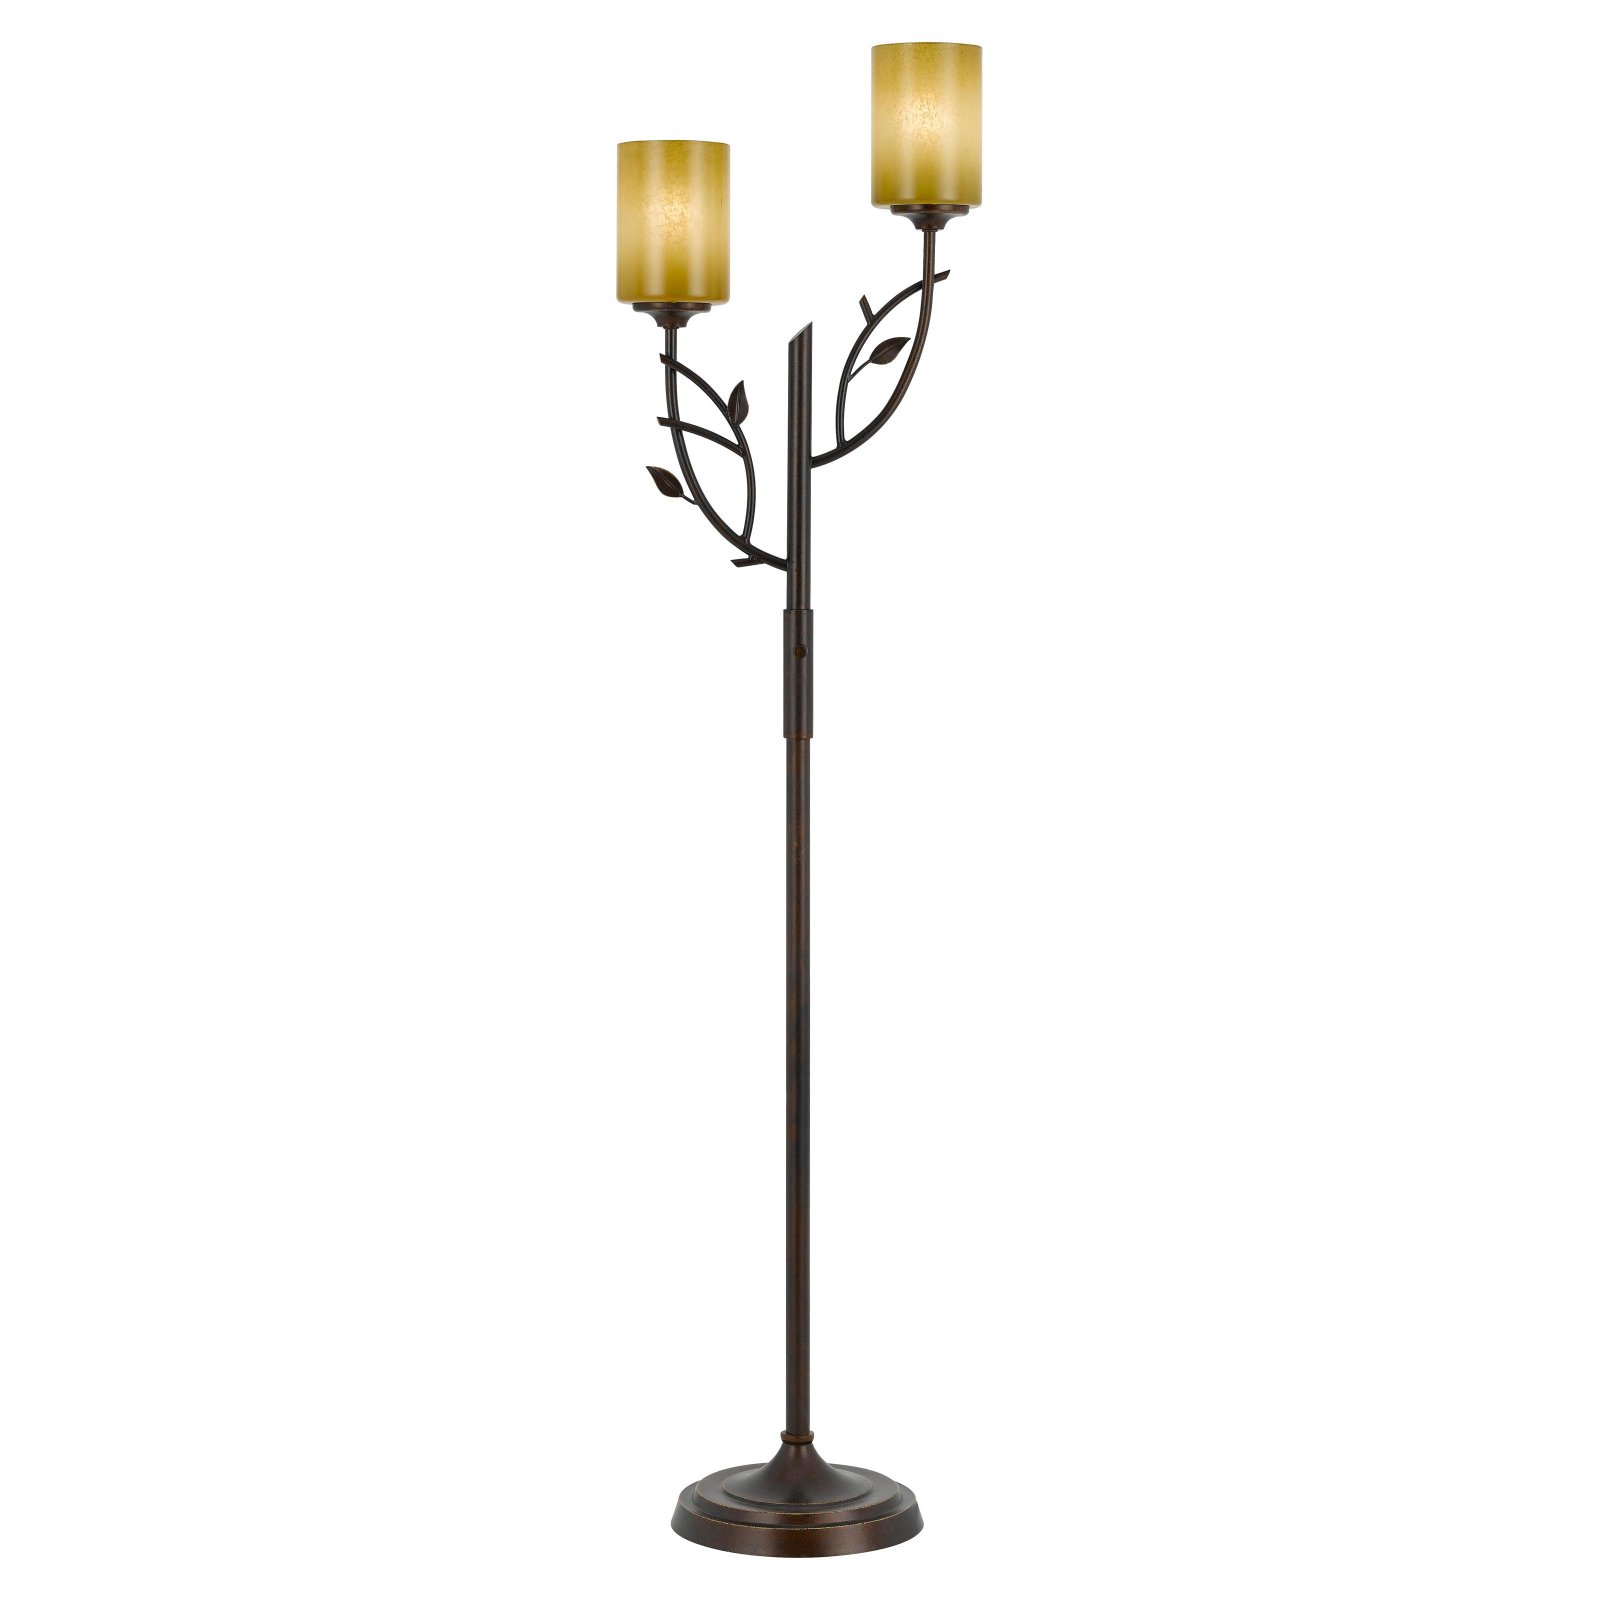 Cal Lighting BO-2214FL Hana Iron Floor Lamp by CAL Lighting